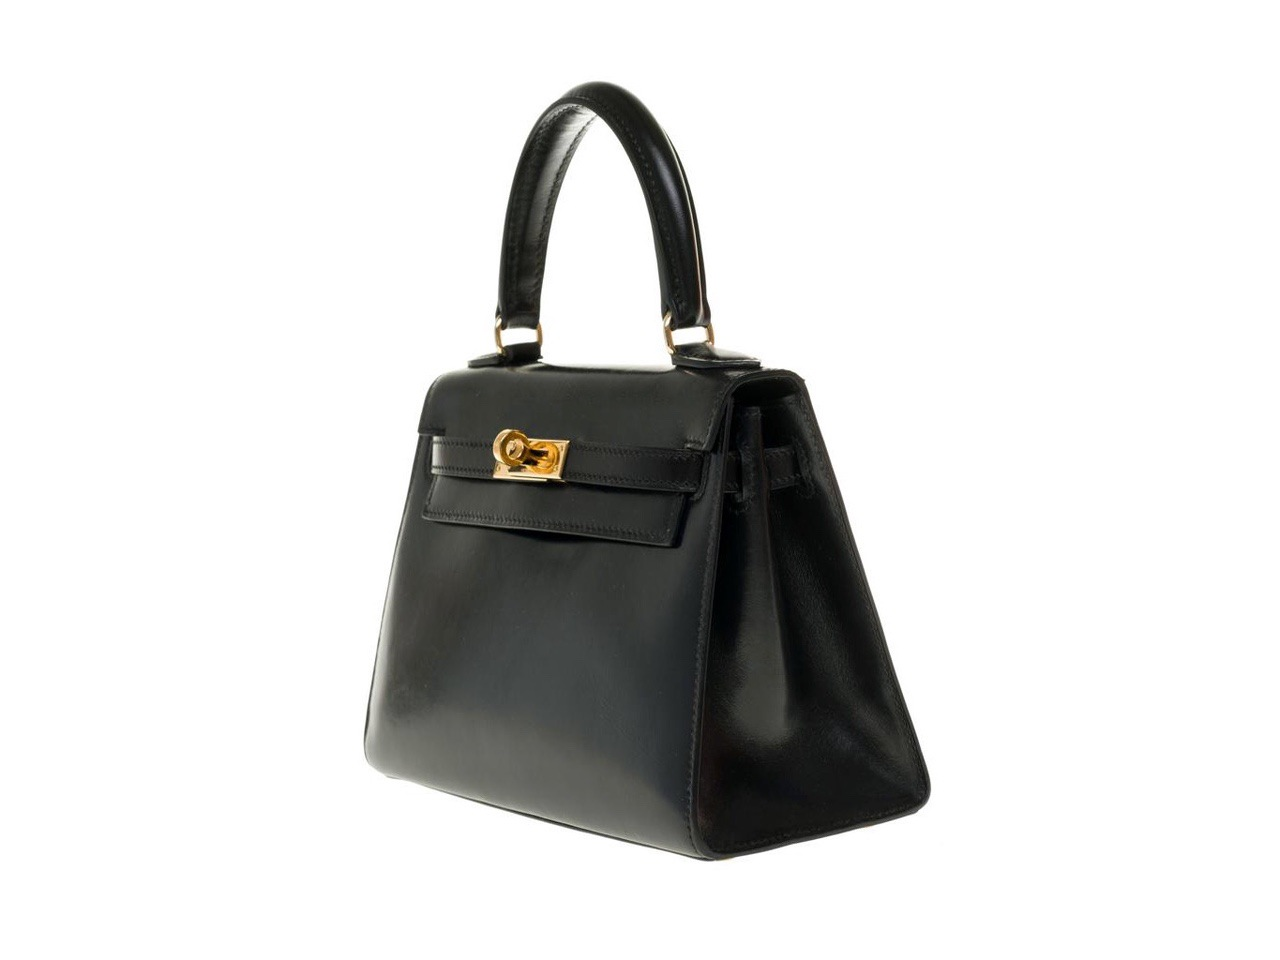 Hermès-Mini-Kelly-20-Black-4-1